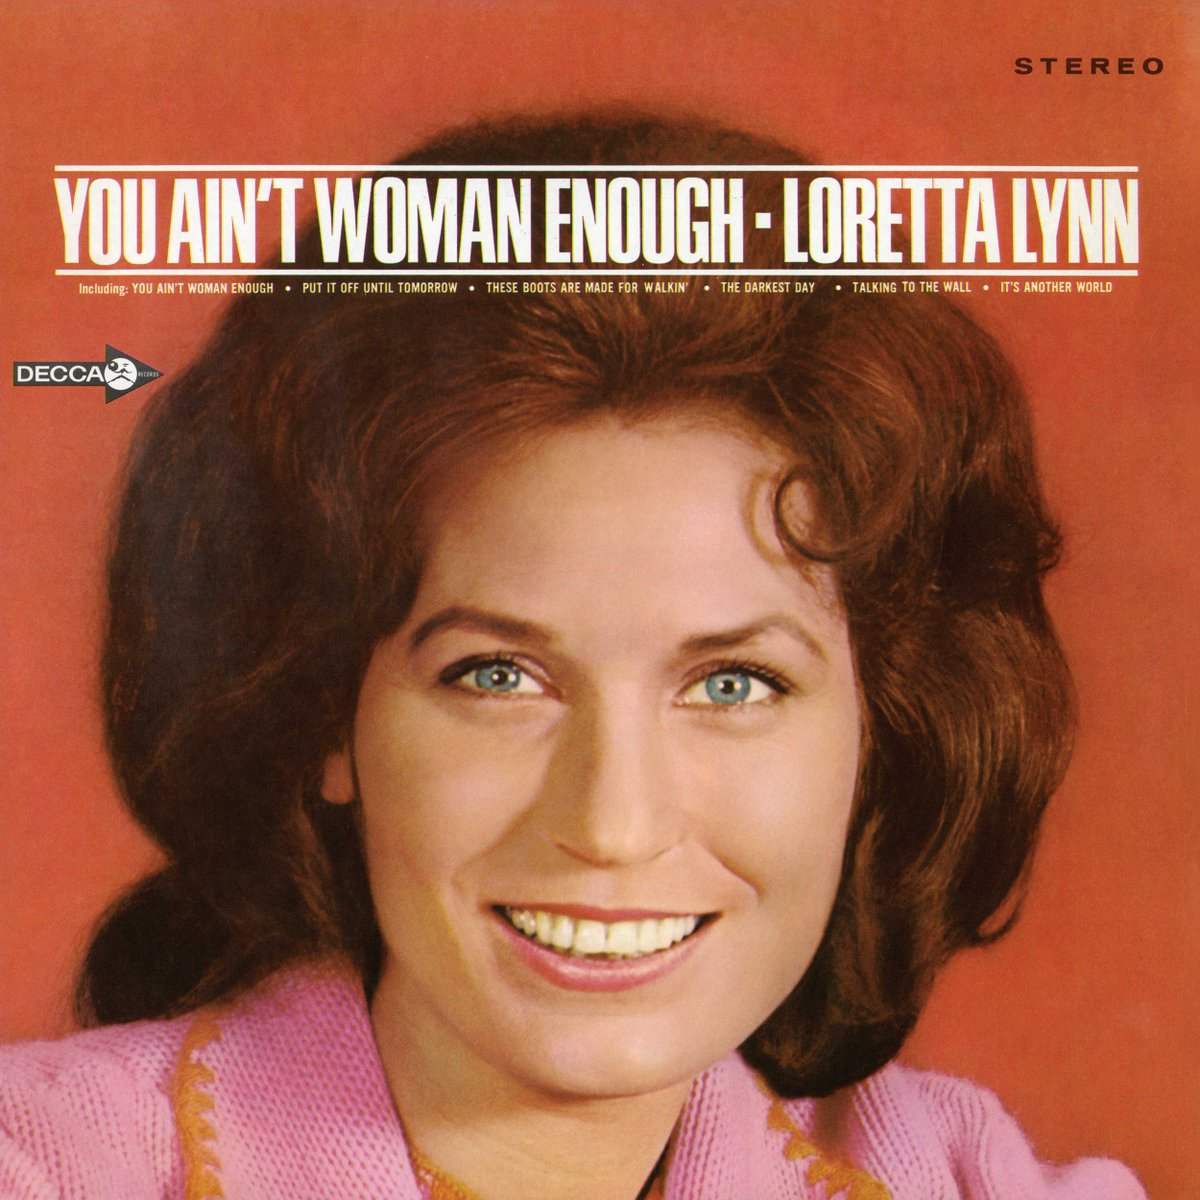 Today marks the 50th anniversary of 'You Ain't Woman Enough.' Share your favorite song! https://t.co/SqyO8psRt2 https://t.co/7dKKHNLqg4